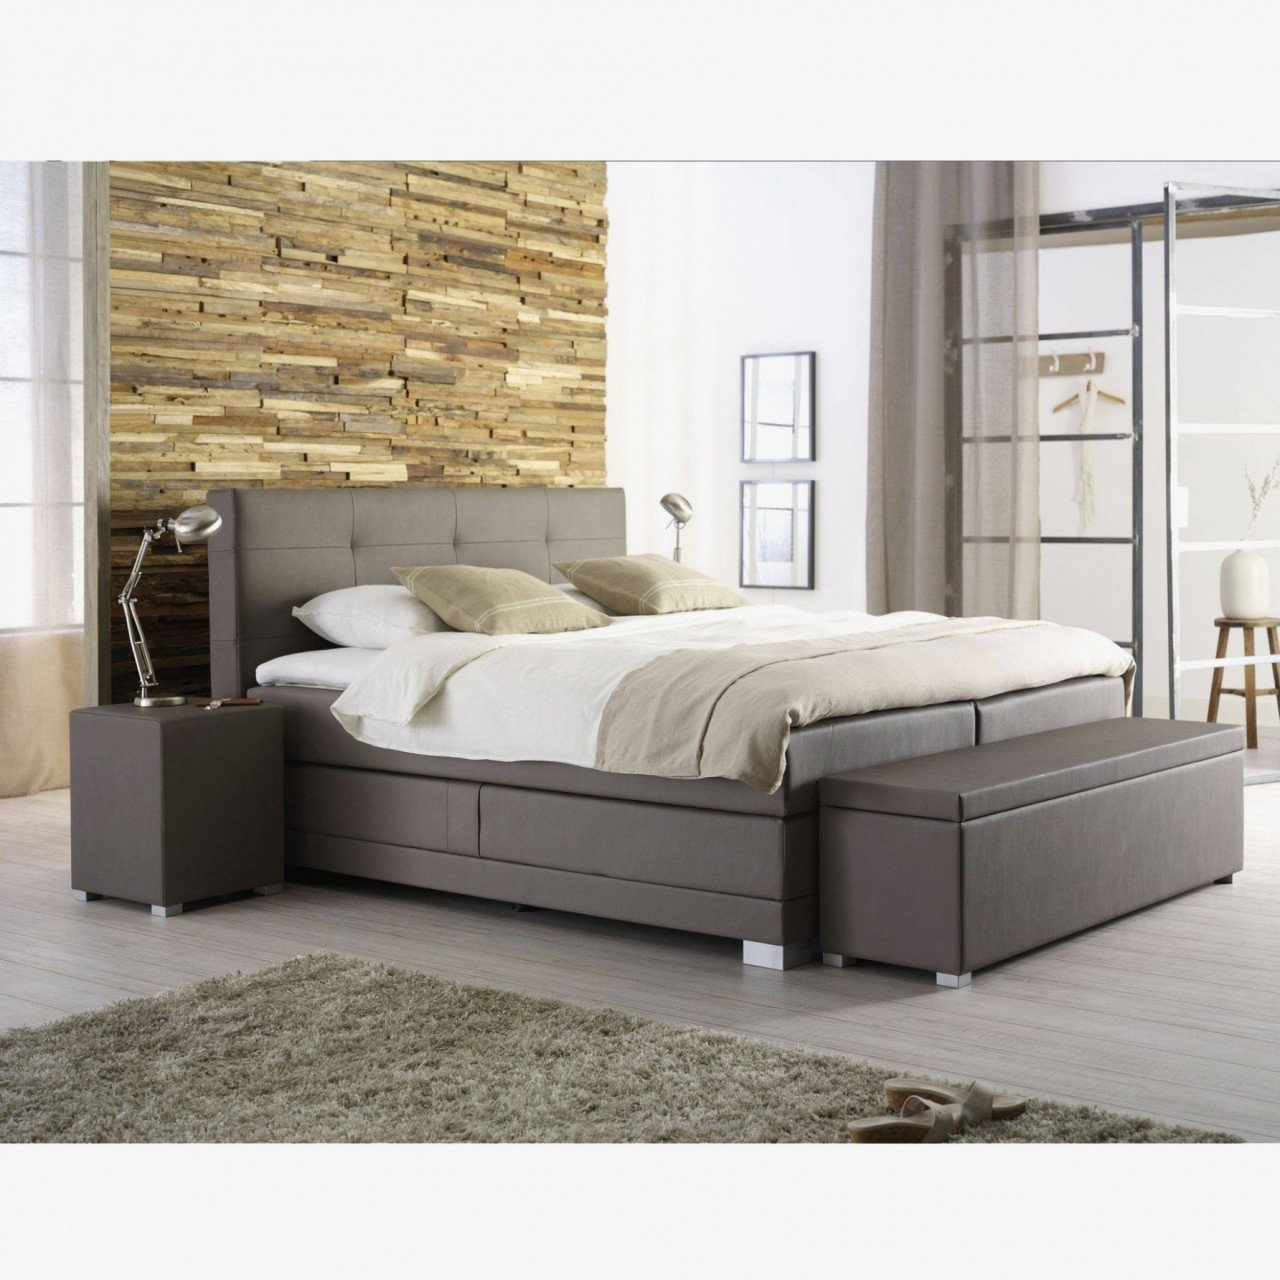 Bedroom Furniture for Cheap Unique Drawers Under Bed — Procura Home Blog